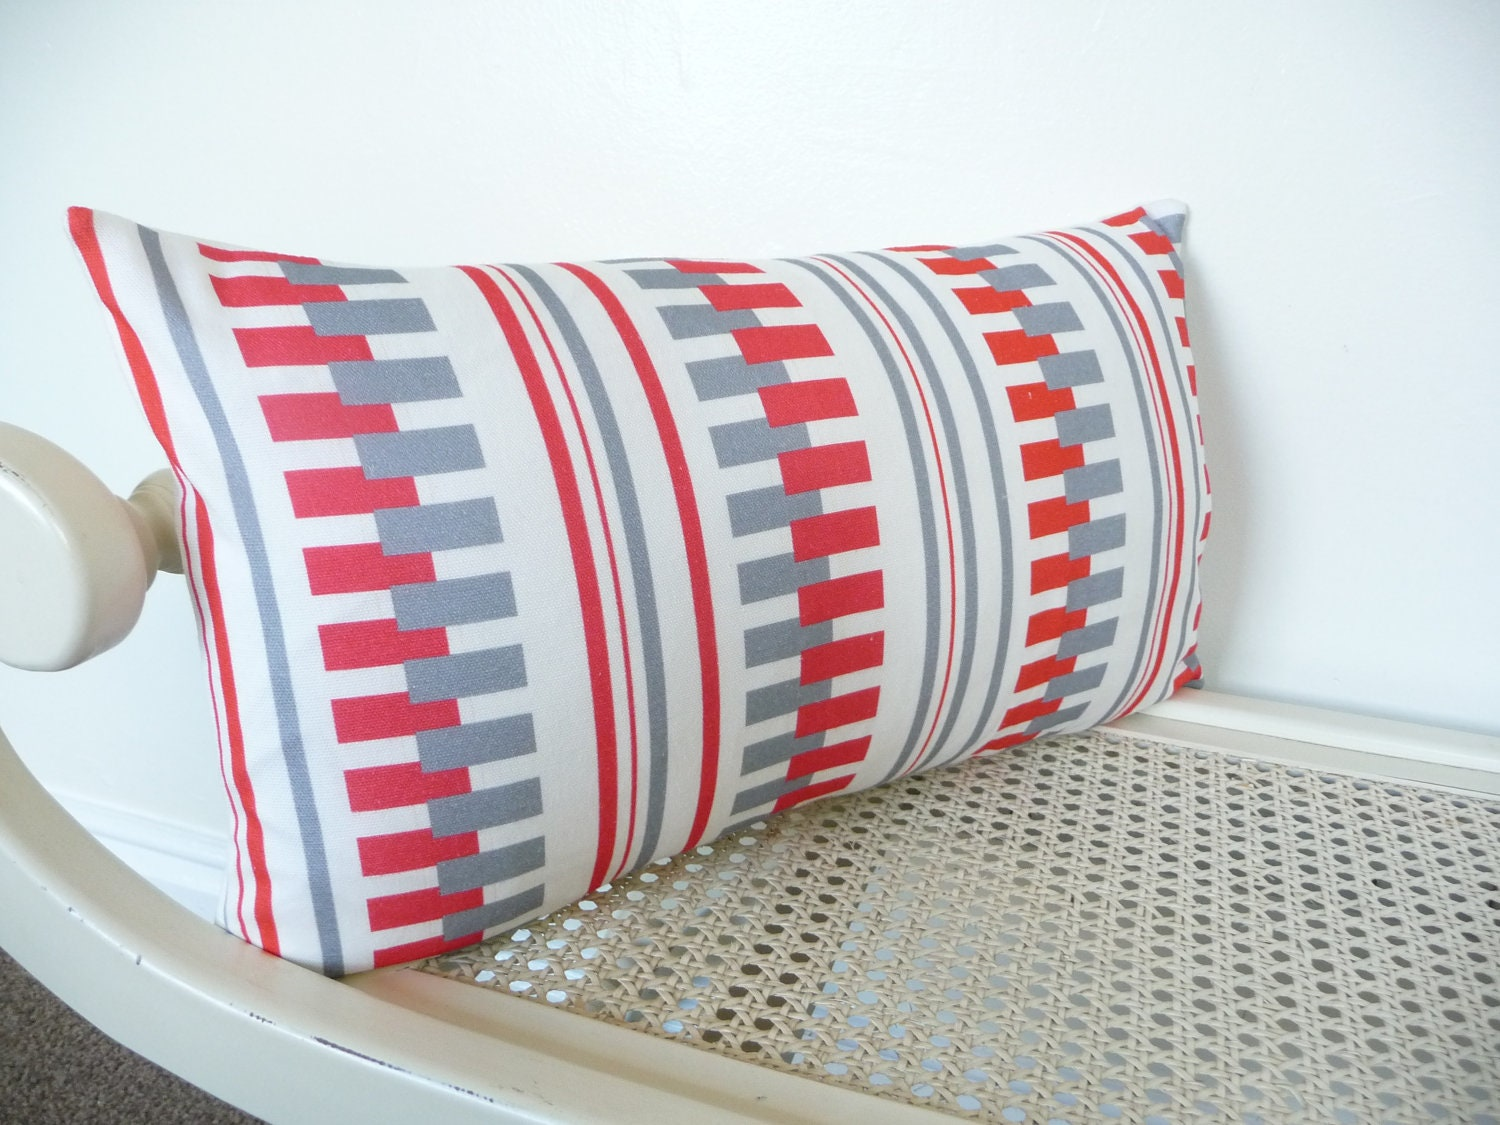 Cushion Retro Red Grey white throw Pillow Decorative Cushion, slip Cover scatter cushion - FrancishouseDesign